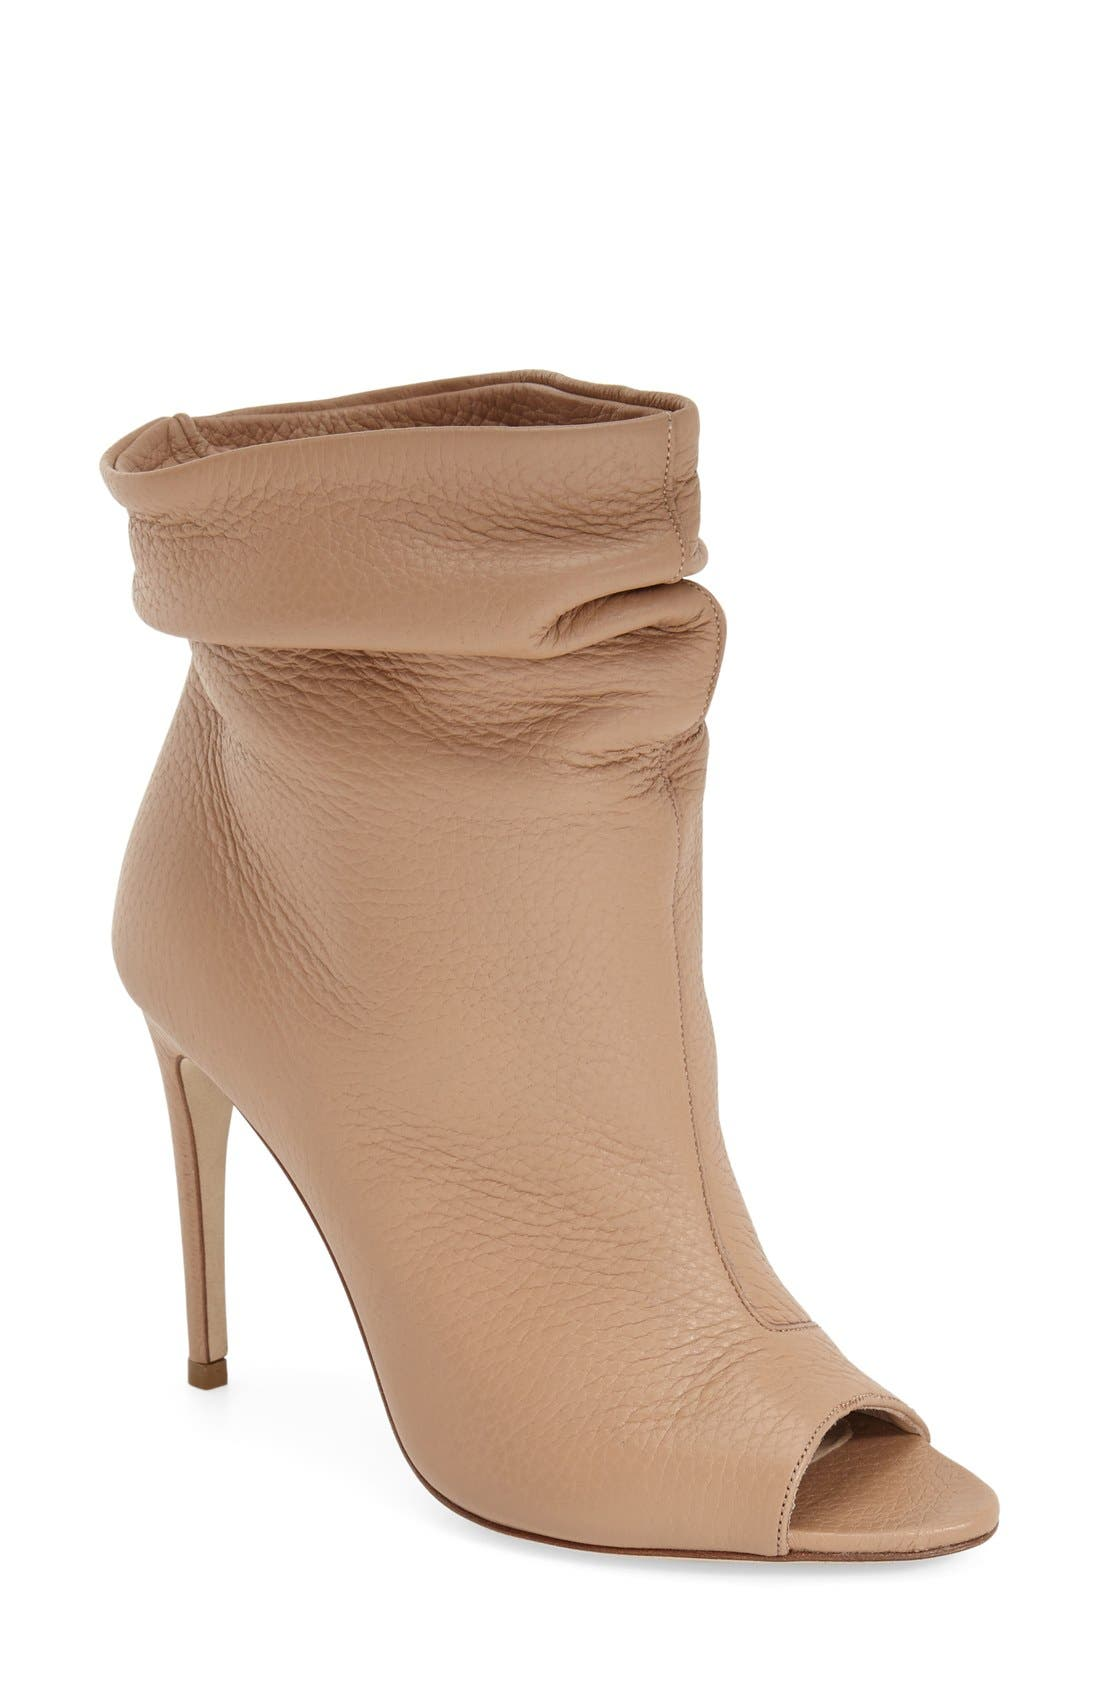 Alternate Image 1 Selected - Burberry 'Burlison' Bootie